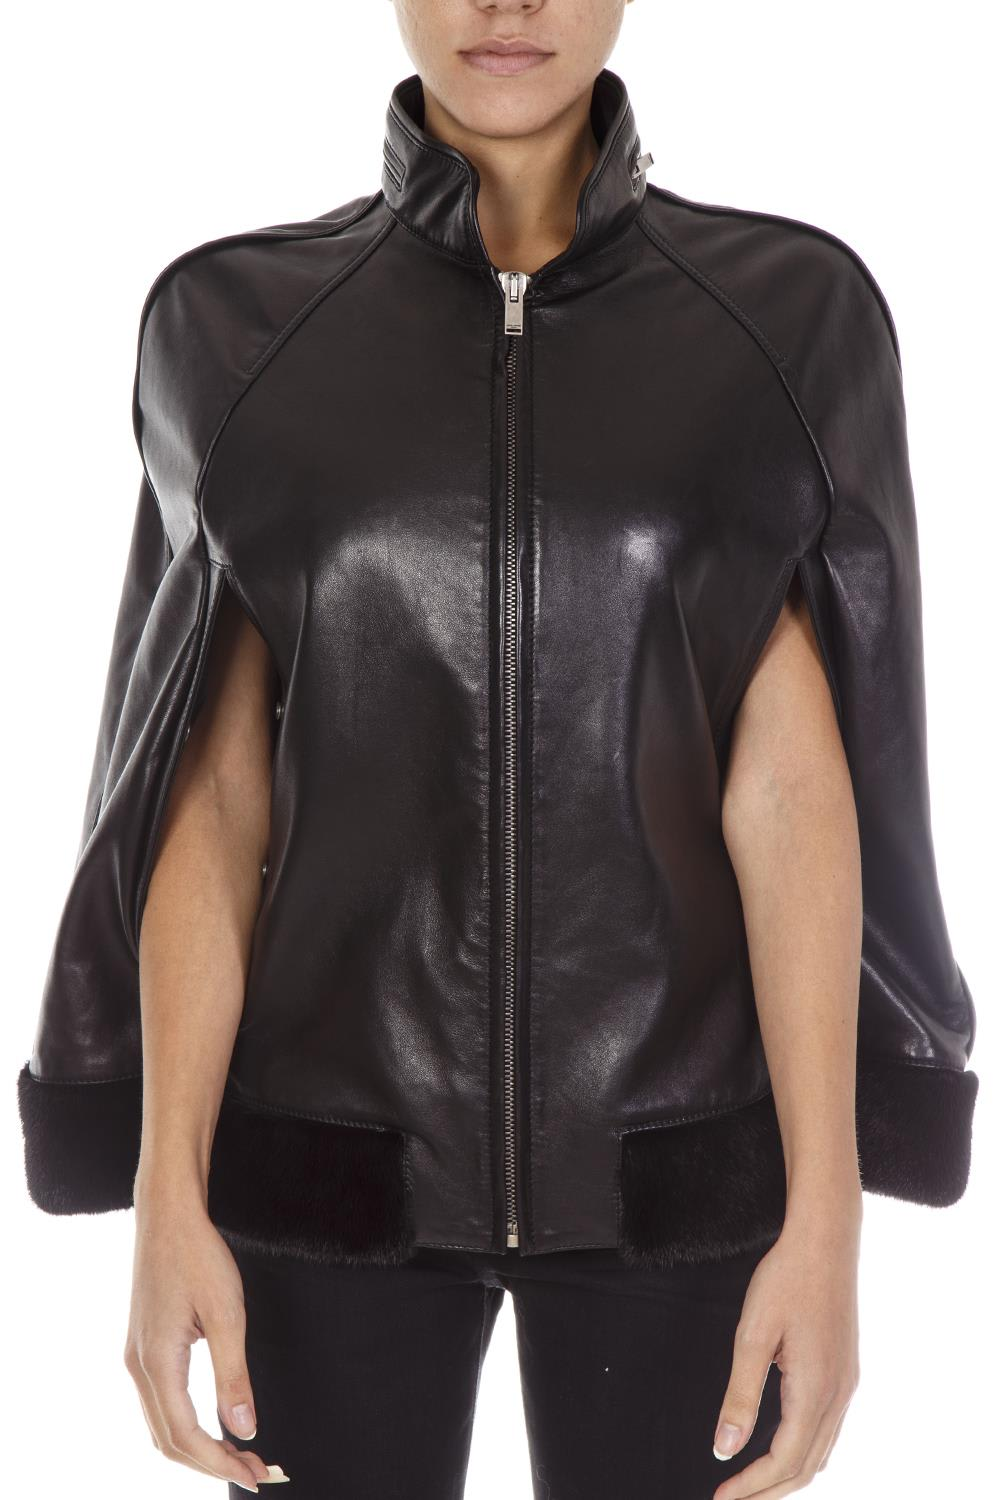 Saint Laurent Black Leather Mantle Jacket